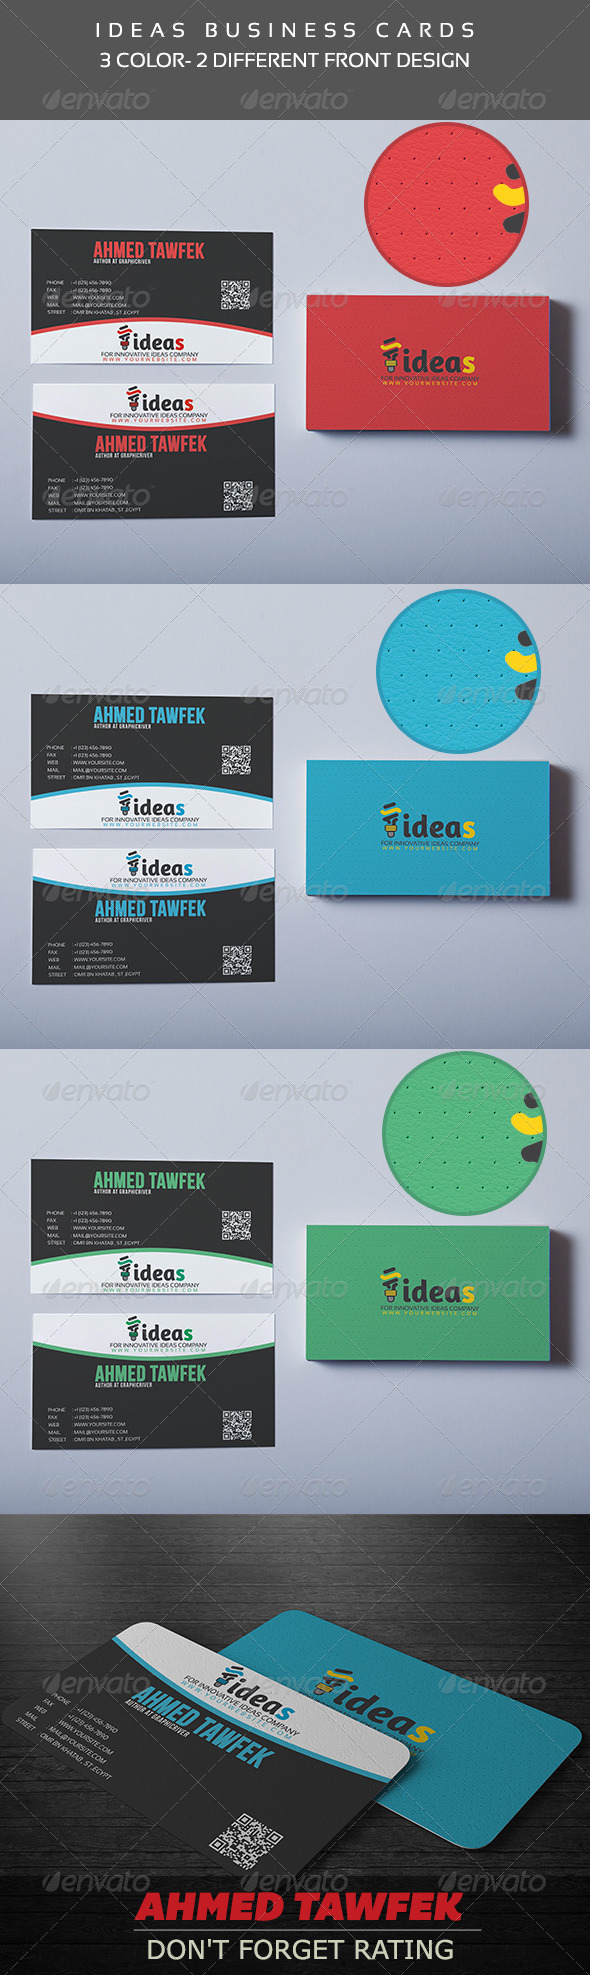 GraphicRiver Ideas Business Cards 4418854